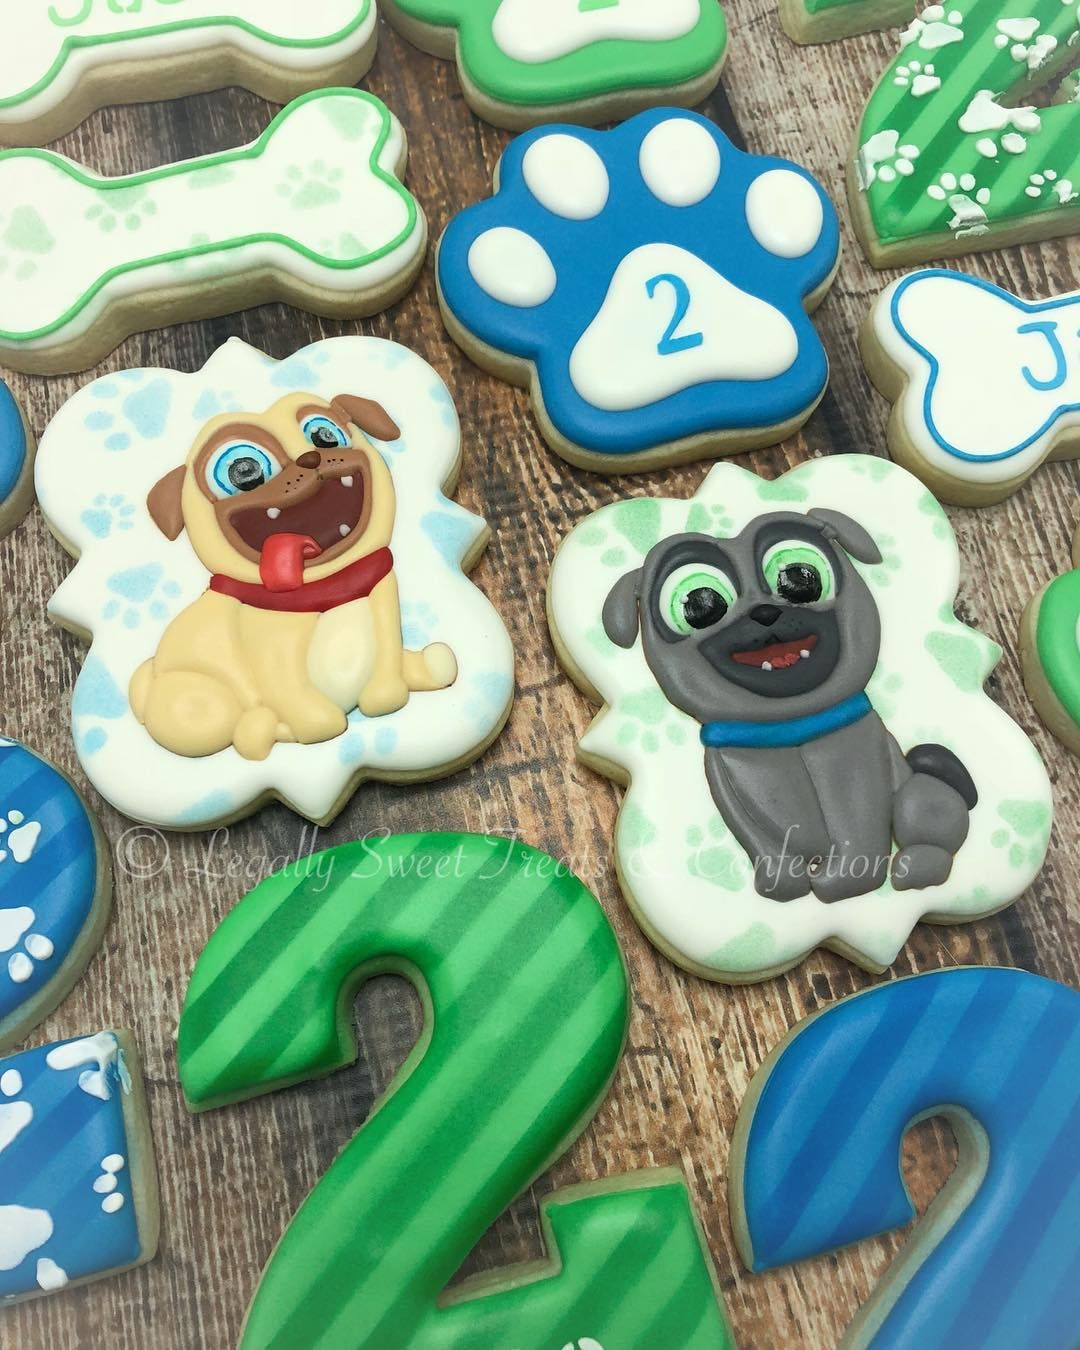 Legally Sweet Treats Conf On Instagram Puppy Dog Pals Birthday